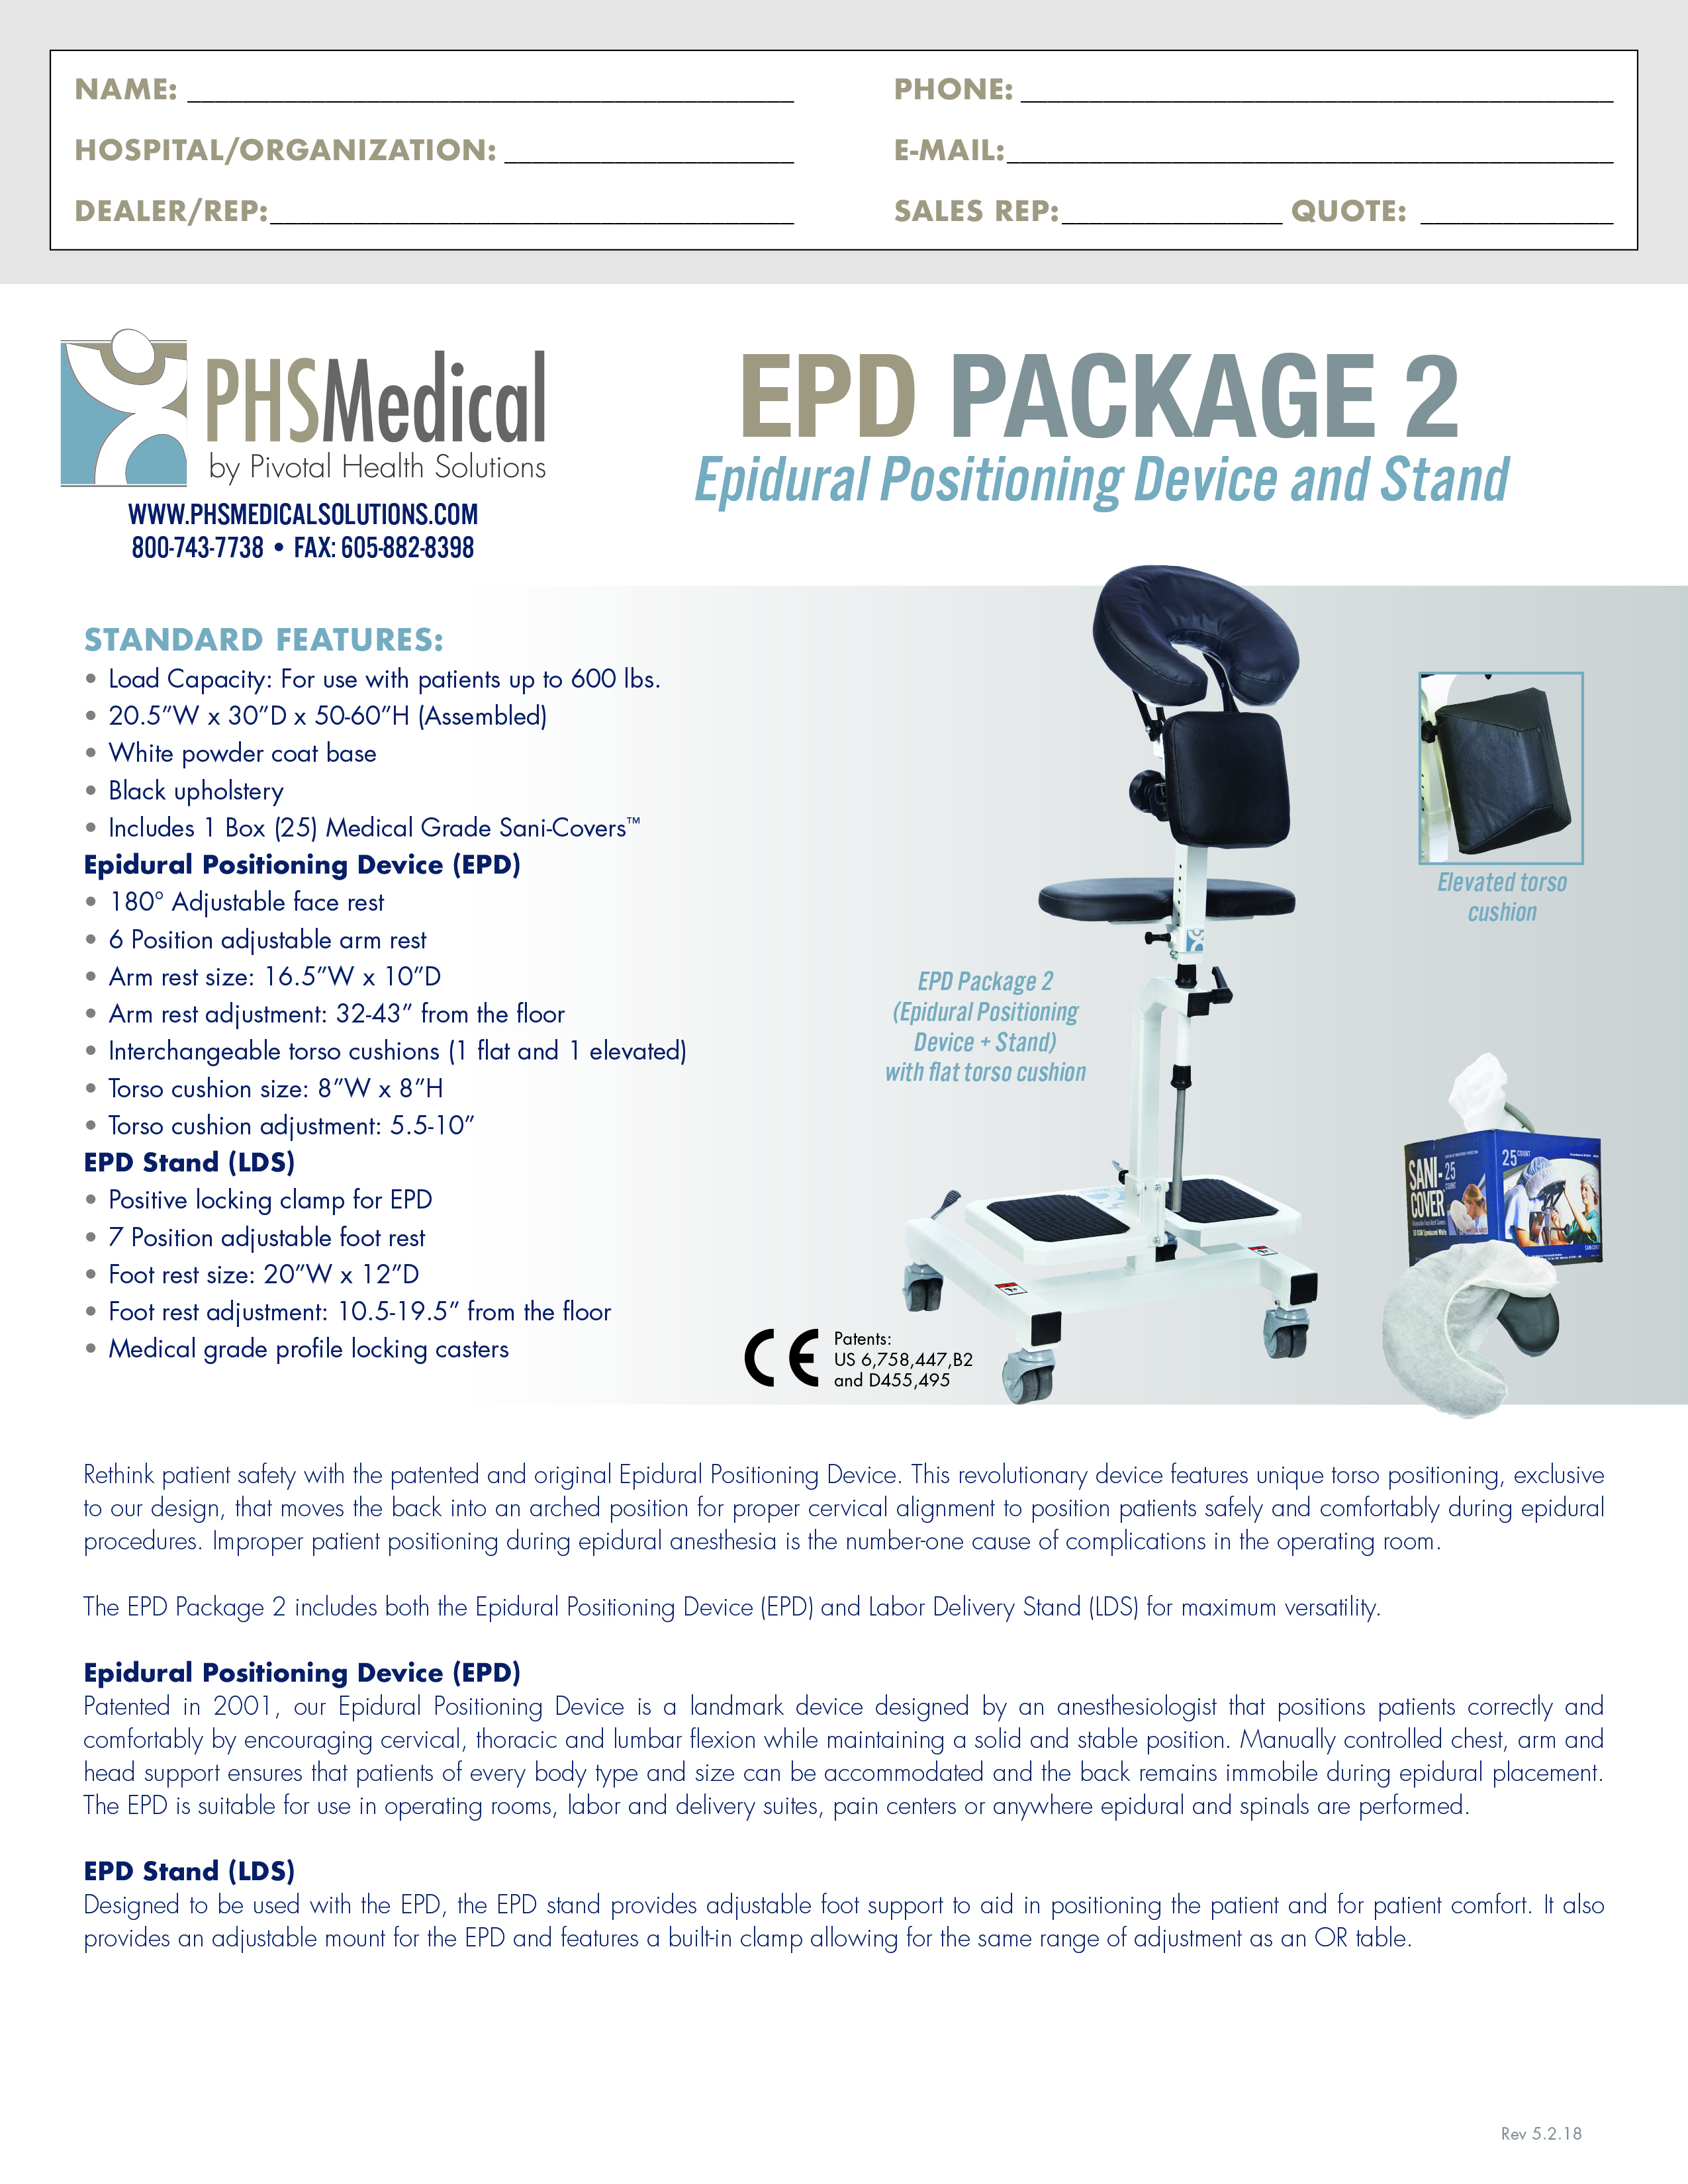 EPD Package 2 (Epidural Positioning Device) Data Sheet